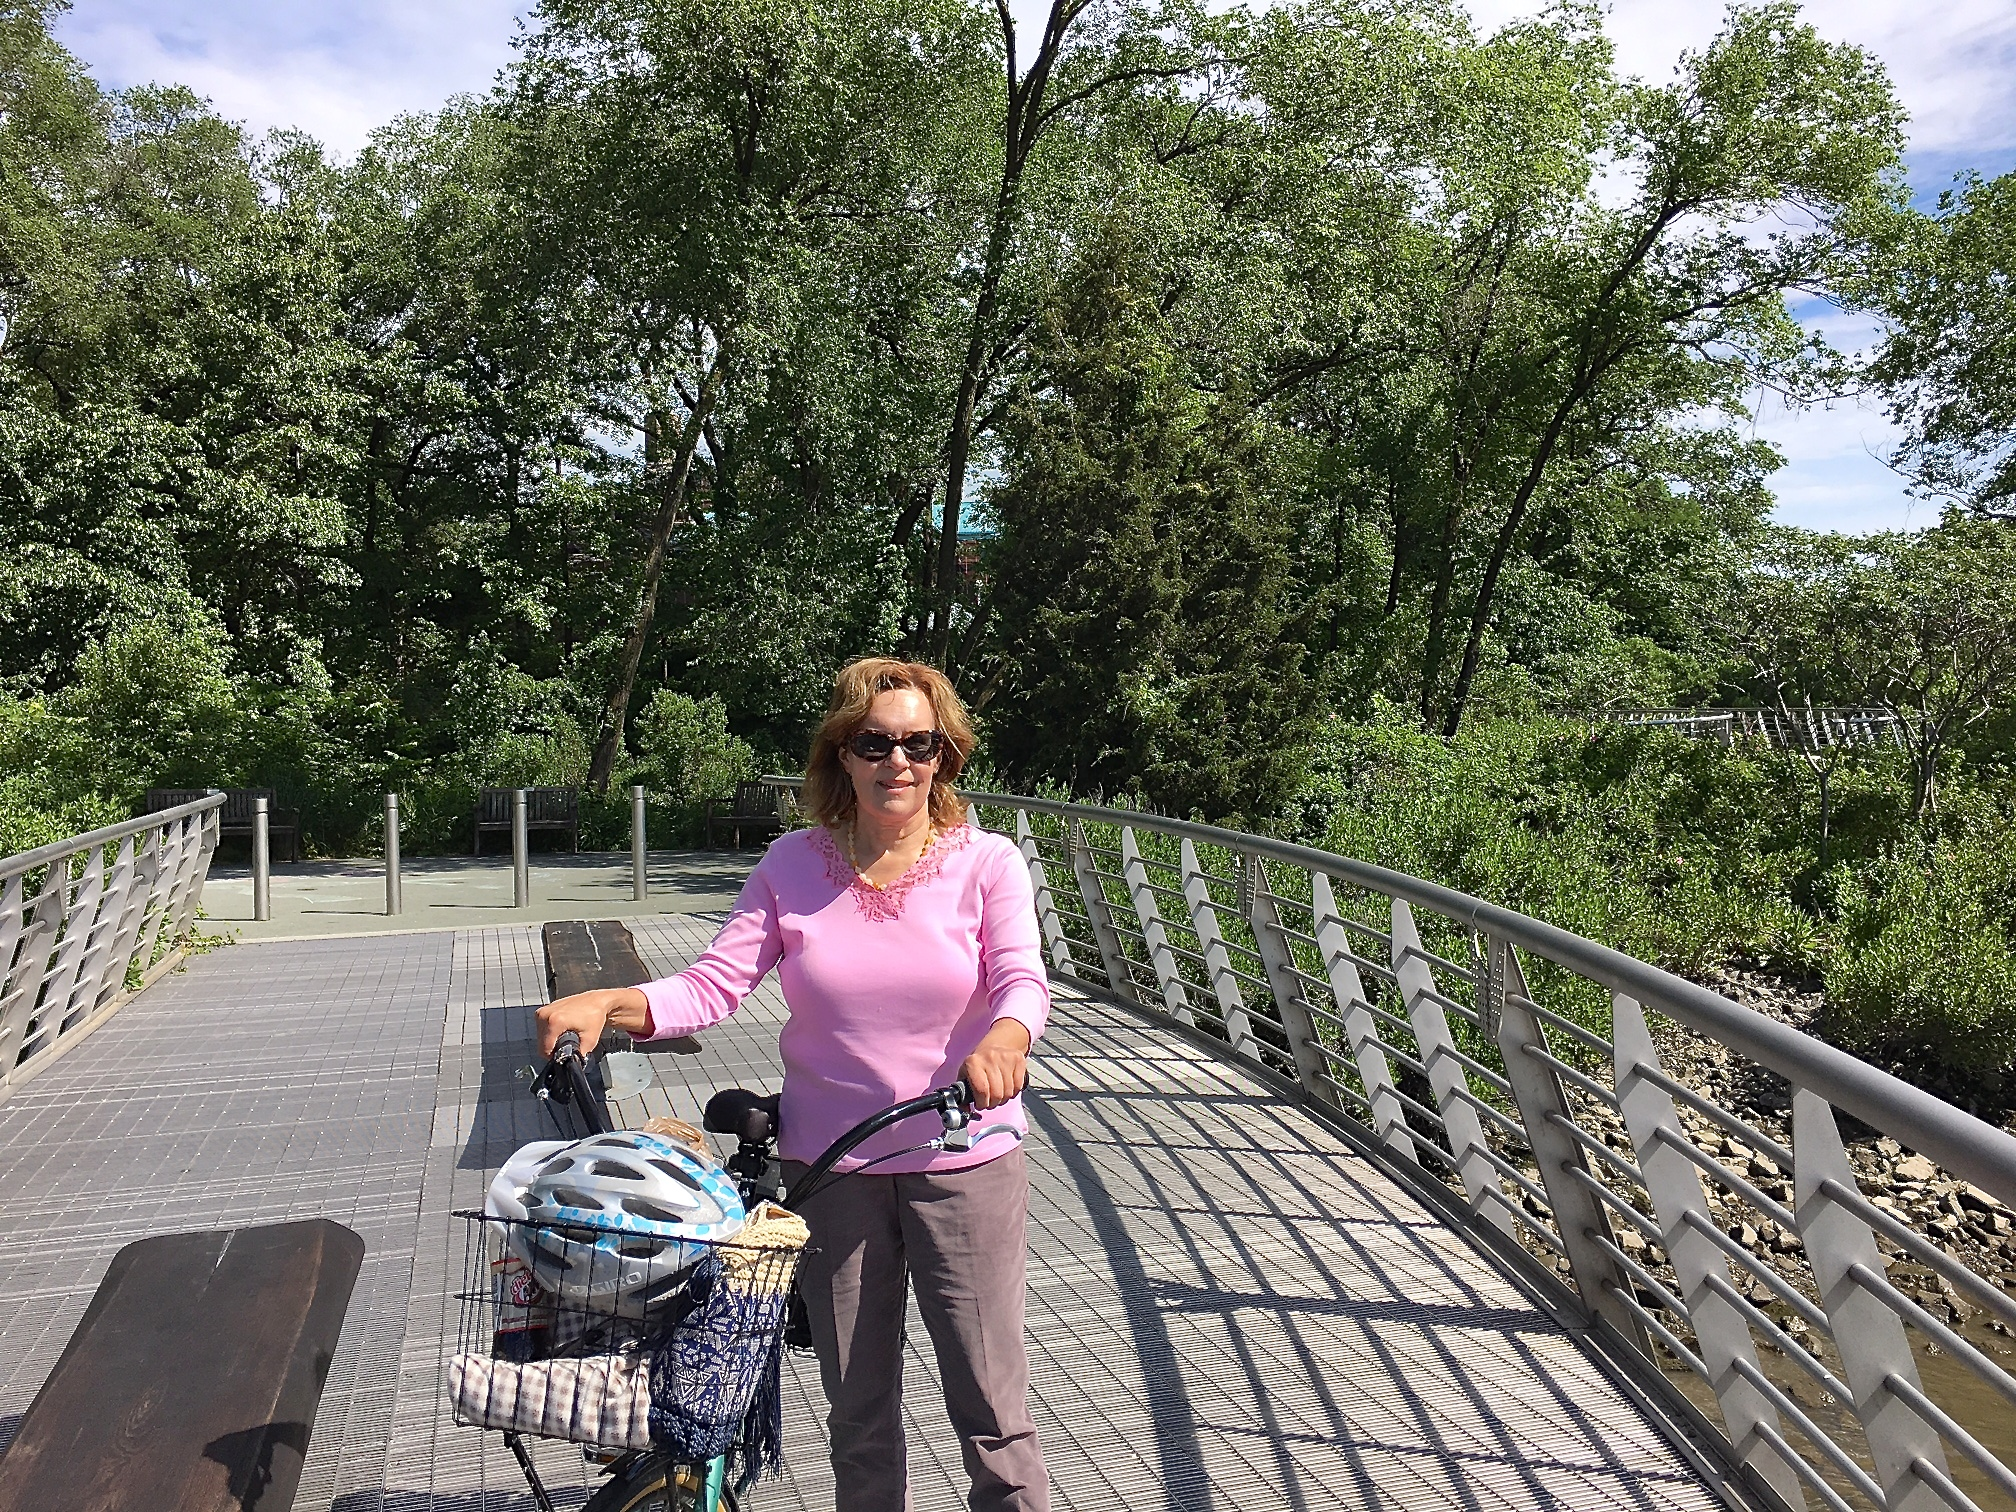 Lorraine Gudas biking along the Harlem River, 6-4-17